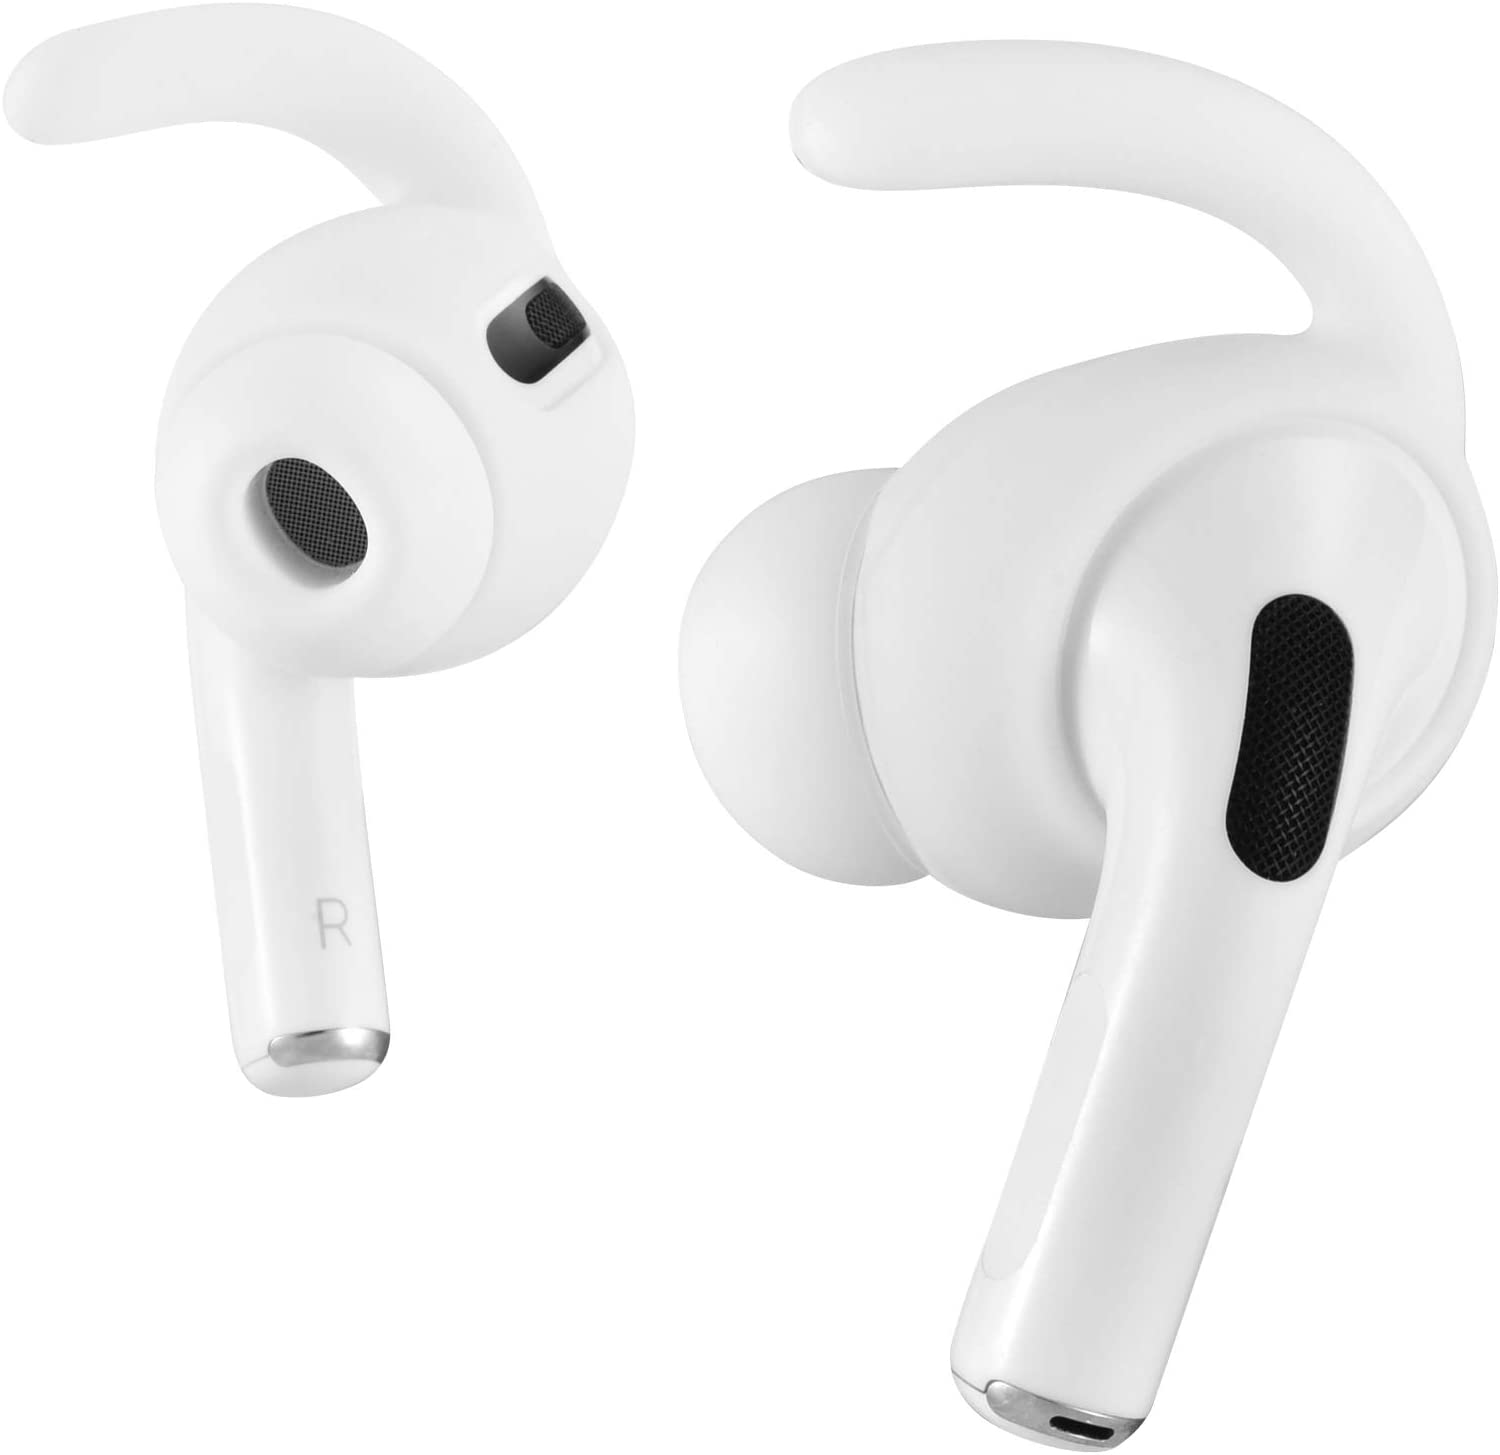 - White 3 Pairs Ear Hooks Compatible with Apple AirPods Pro with Storage Pouch ICARERSPACE Anti-Lost Ear Hooks Ear Covers for Apple AirPods Pro AirPods 3